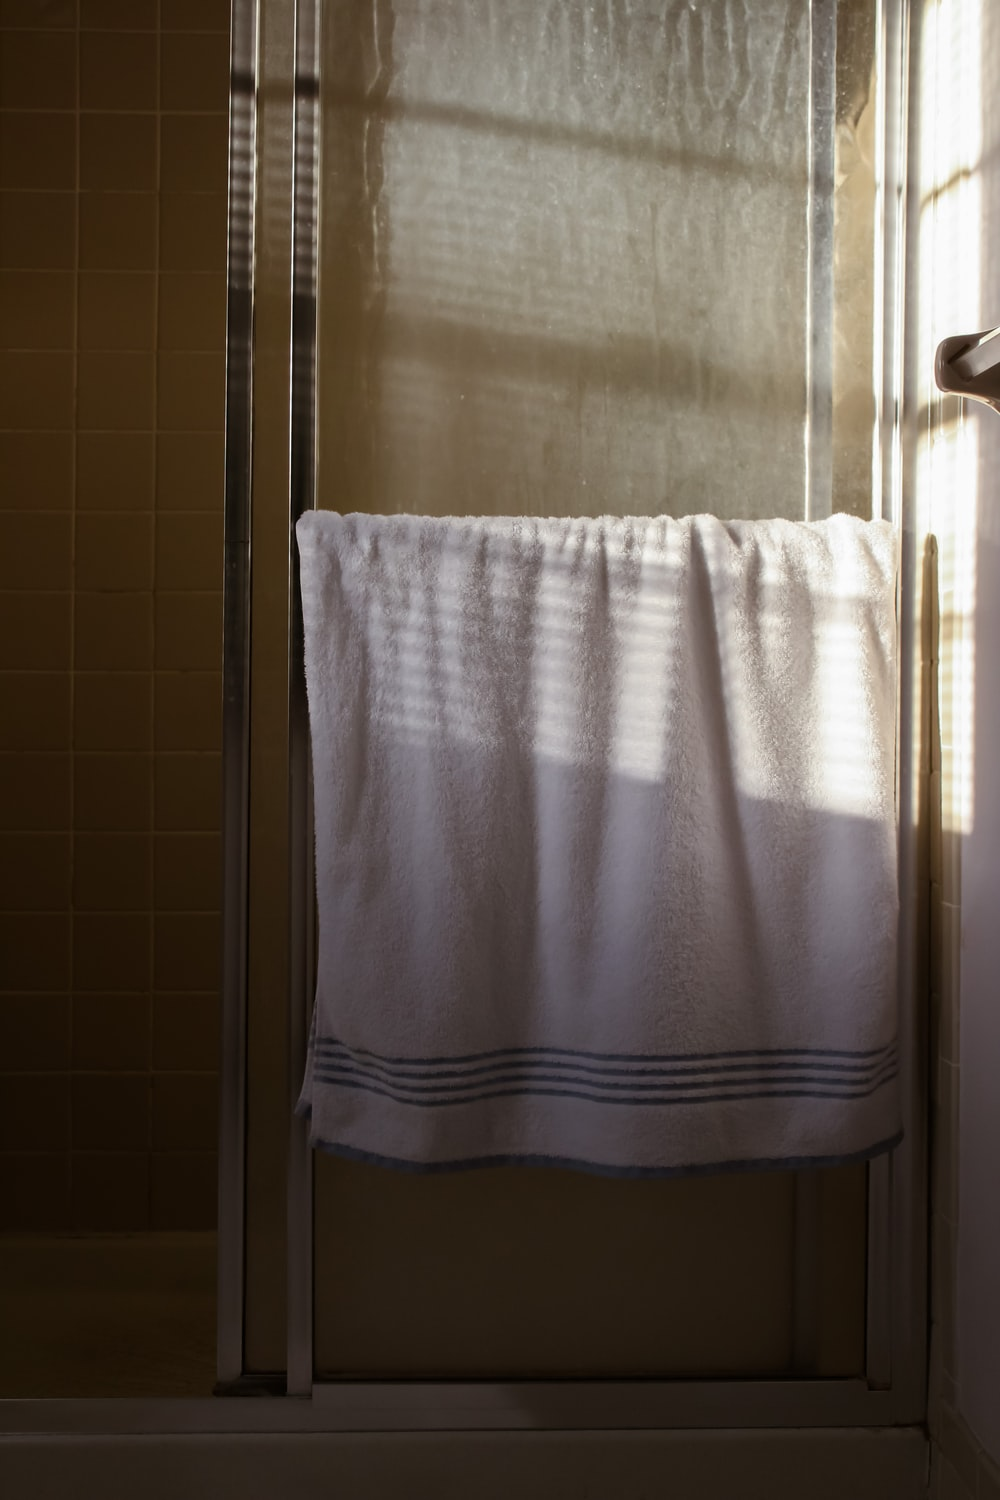 white towel on stainless steel towel bar